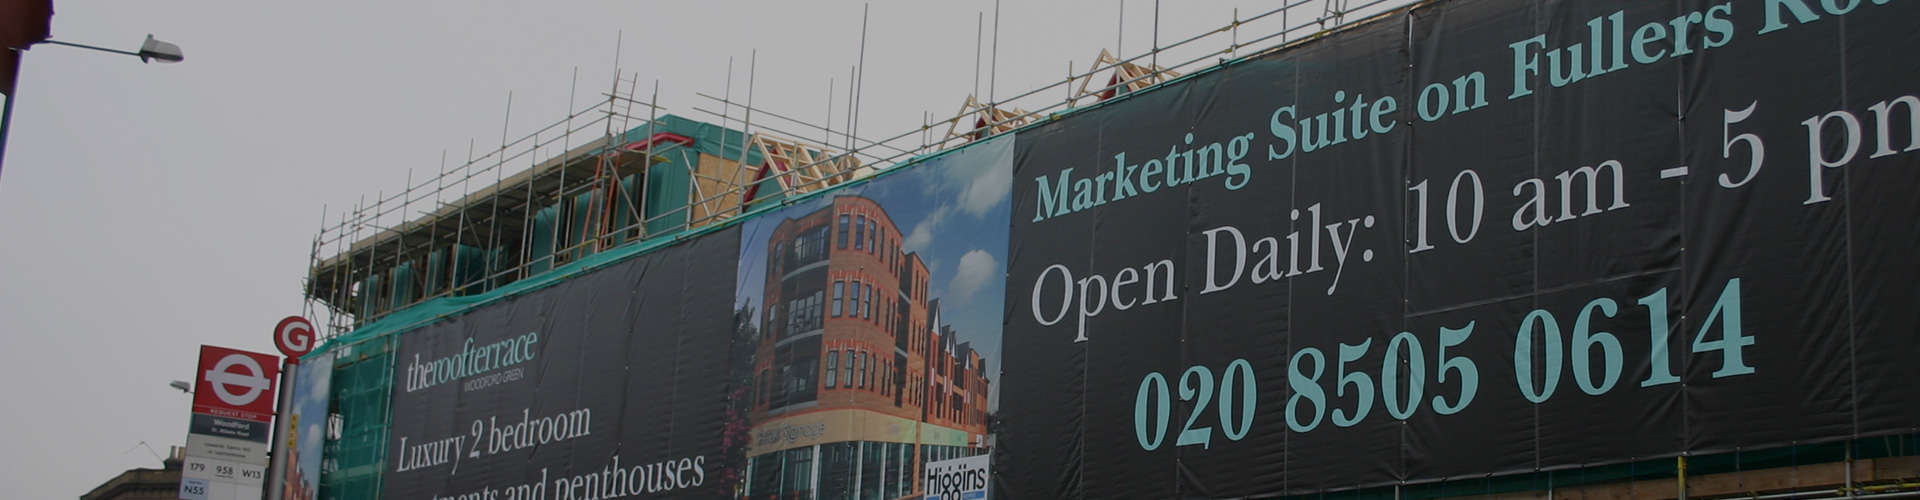 What to Look For In Professional Signage Design For Property Marketing